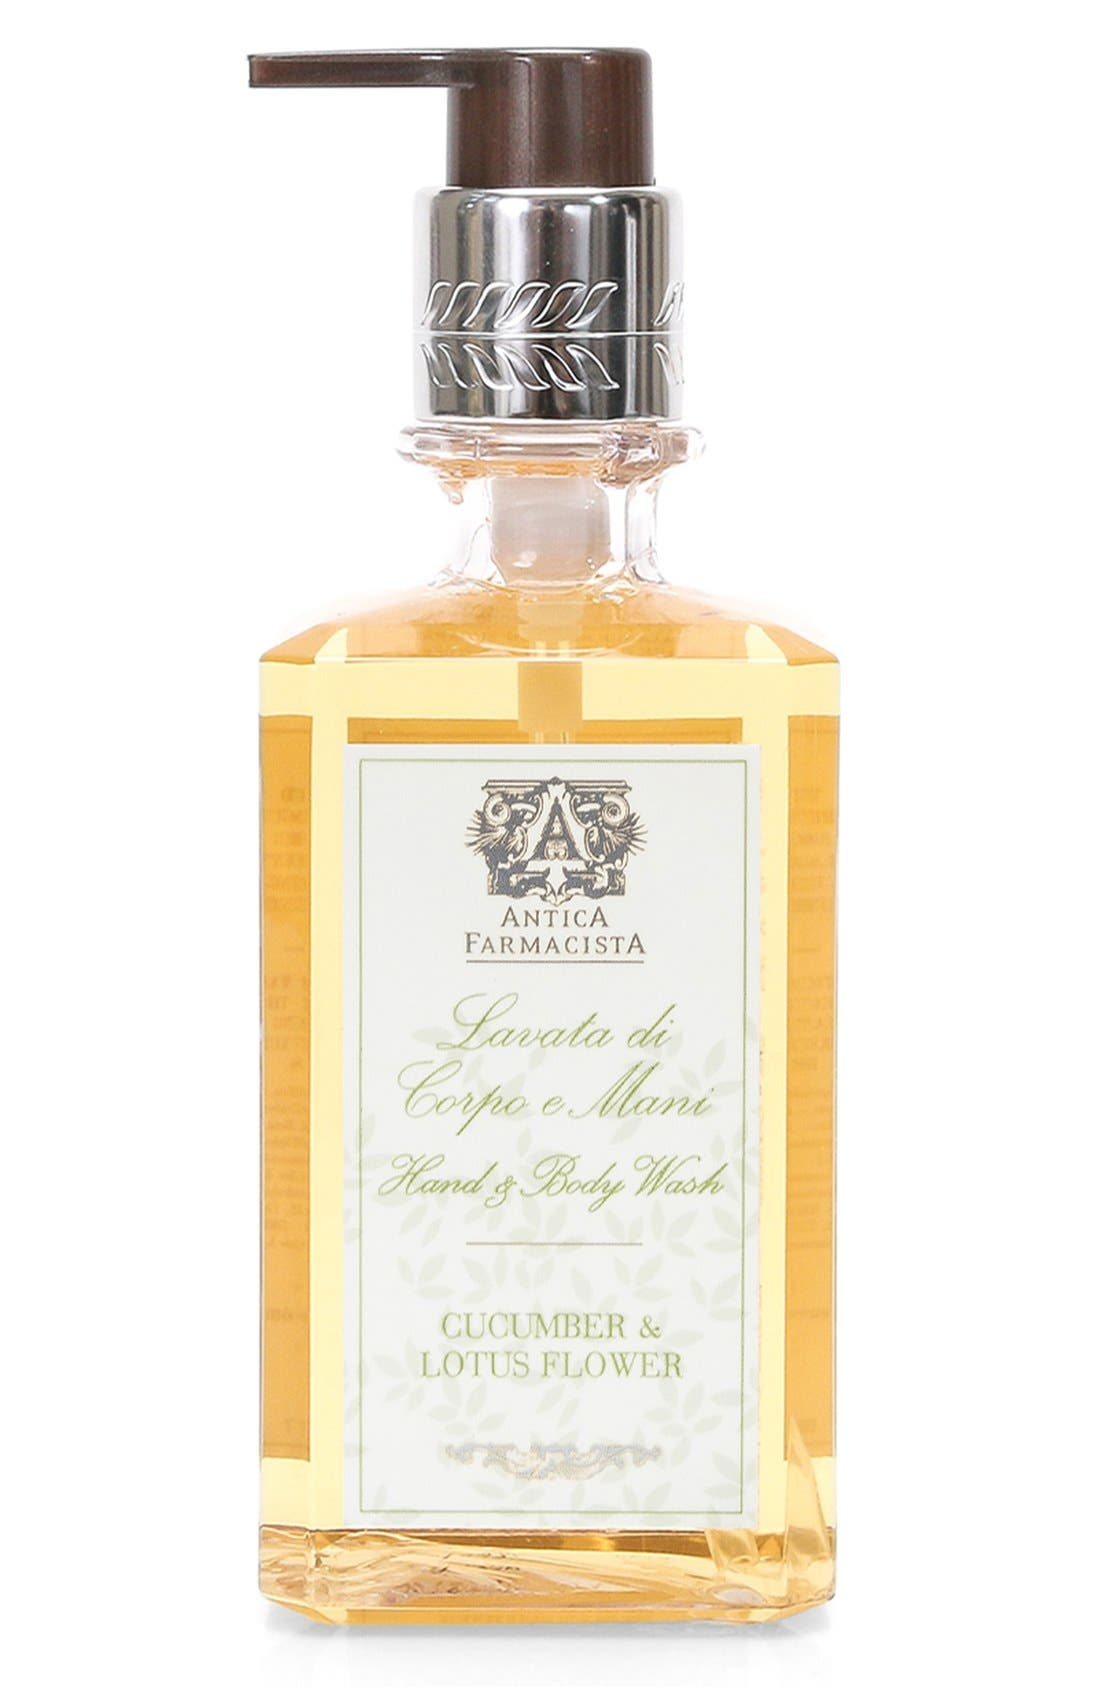 Antica Farmacista 'Cucumber & Lotus Flower' Hand & Body Wash